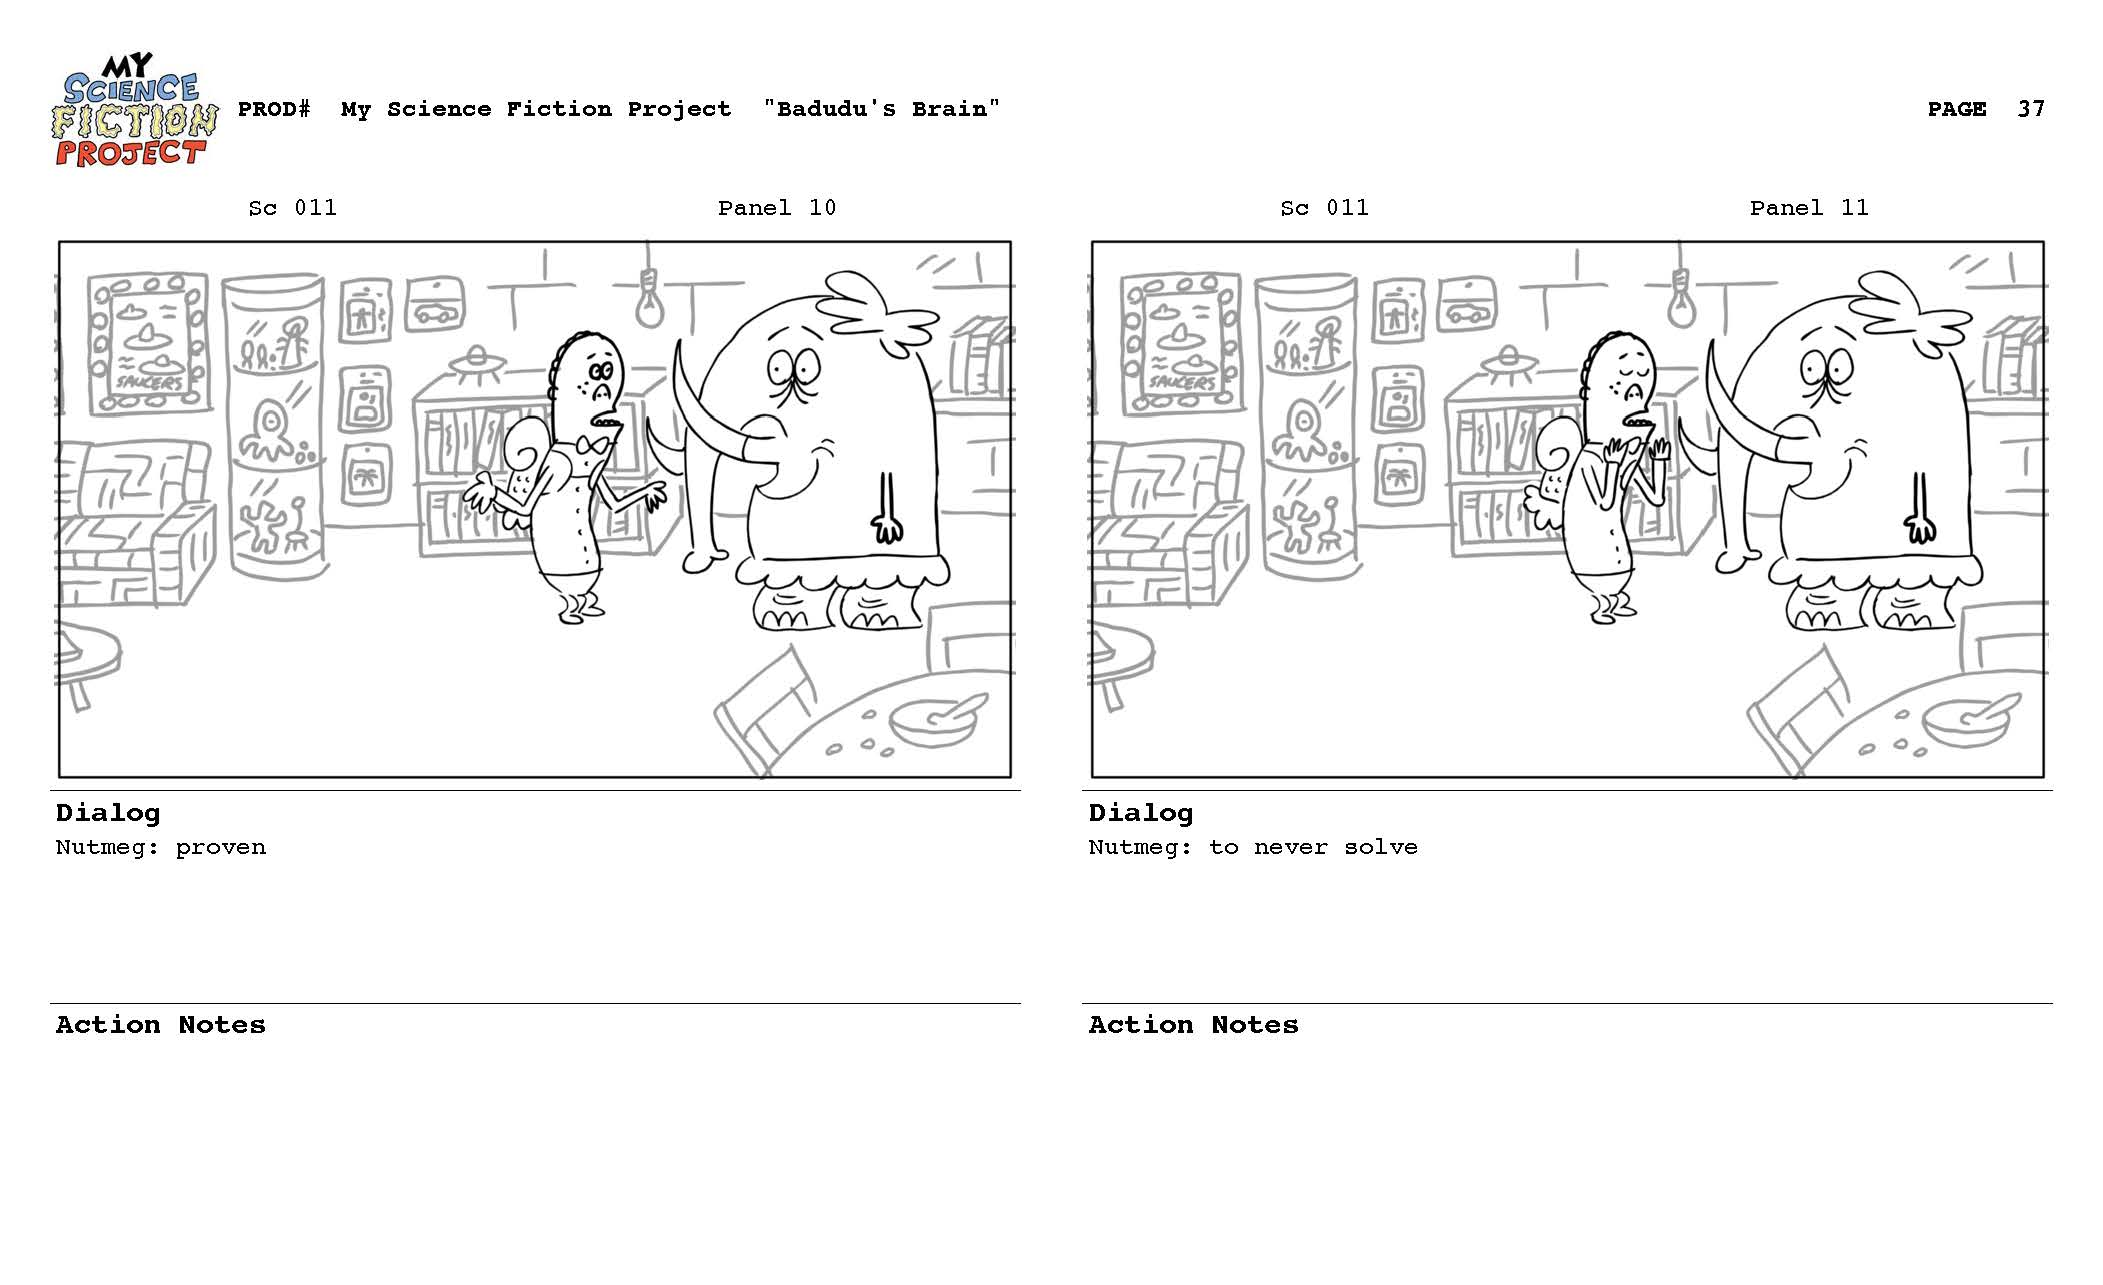 My_Science_Fiction_Project_SB_083112_reduced_Page_037.jpg